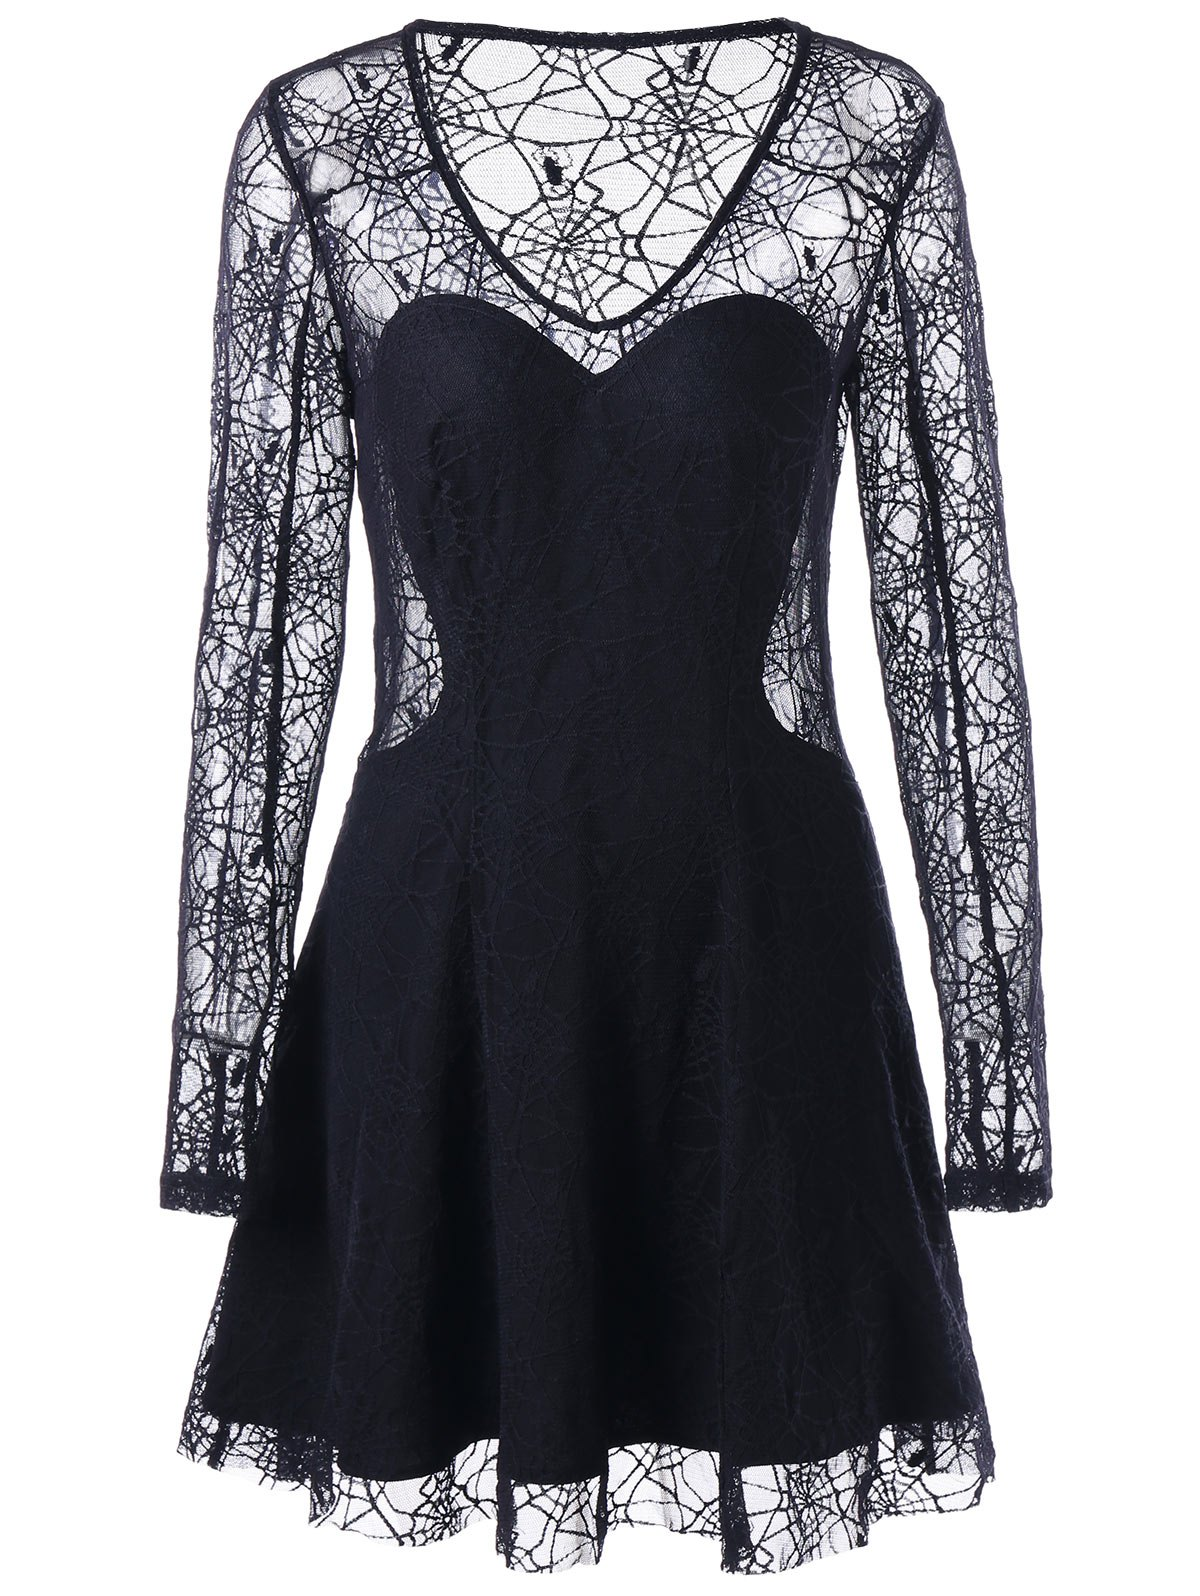 Halloween Spider Lace See Thru DressWOMEN<br><br>Size: L; Color: BLACK; Style: Sexy &amp; Club; Material: Polyester; Silhouette: A-Line; Dresses Length: Mini; Neckline: Scoop Neck; Sleeve Length: Long Sleeves; Embellishment: Lace; Pattern Type: Solid Color; With Belt: No; Season: Fall,Spring; Weight: 0.2480kg; Package Contents: 1 x Dress; Occasion: Causal,Club,Night Out;